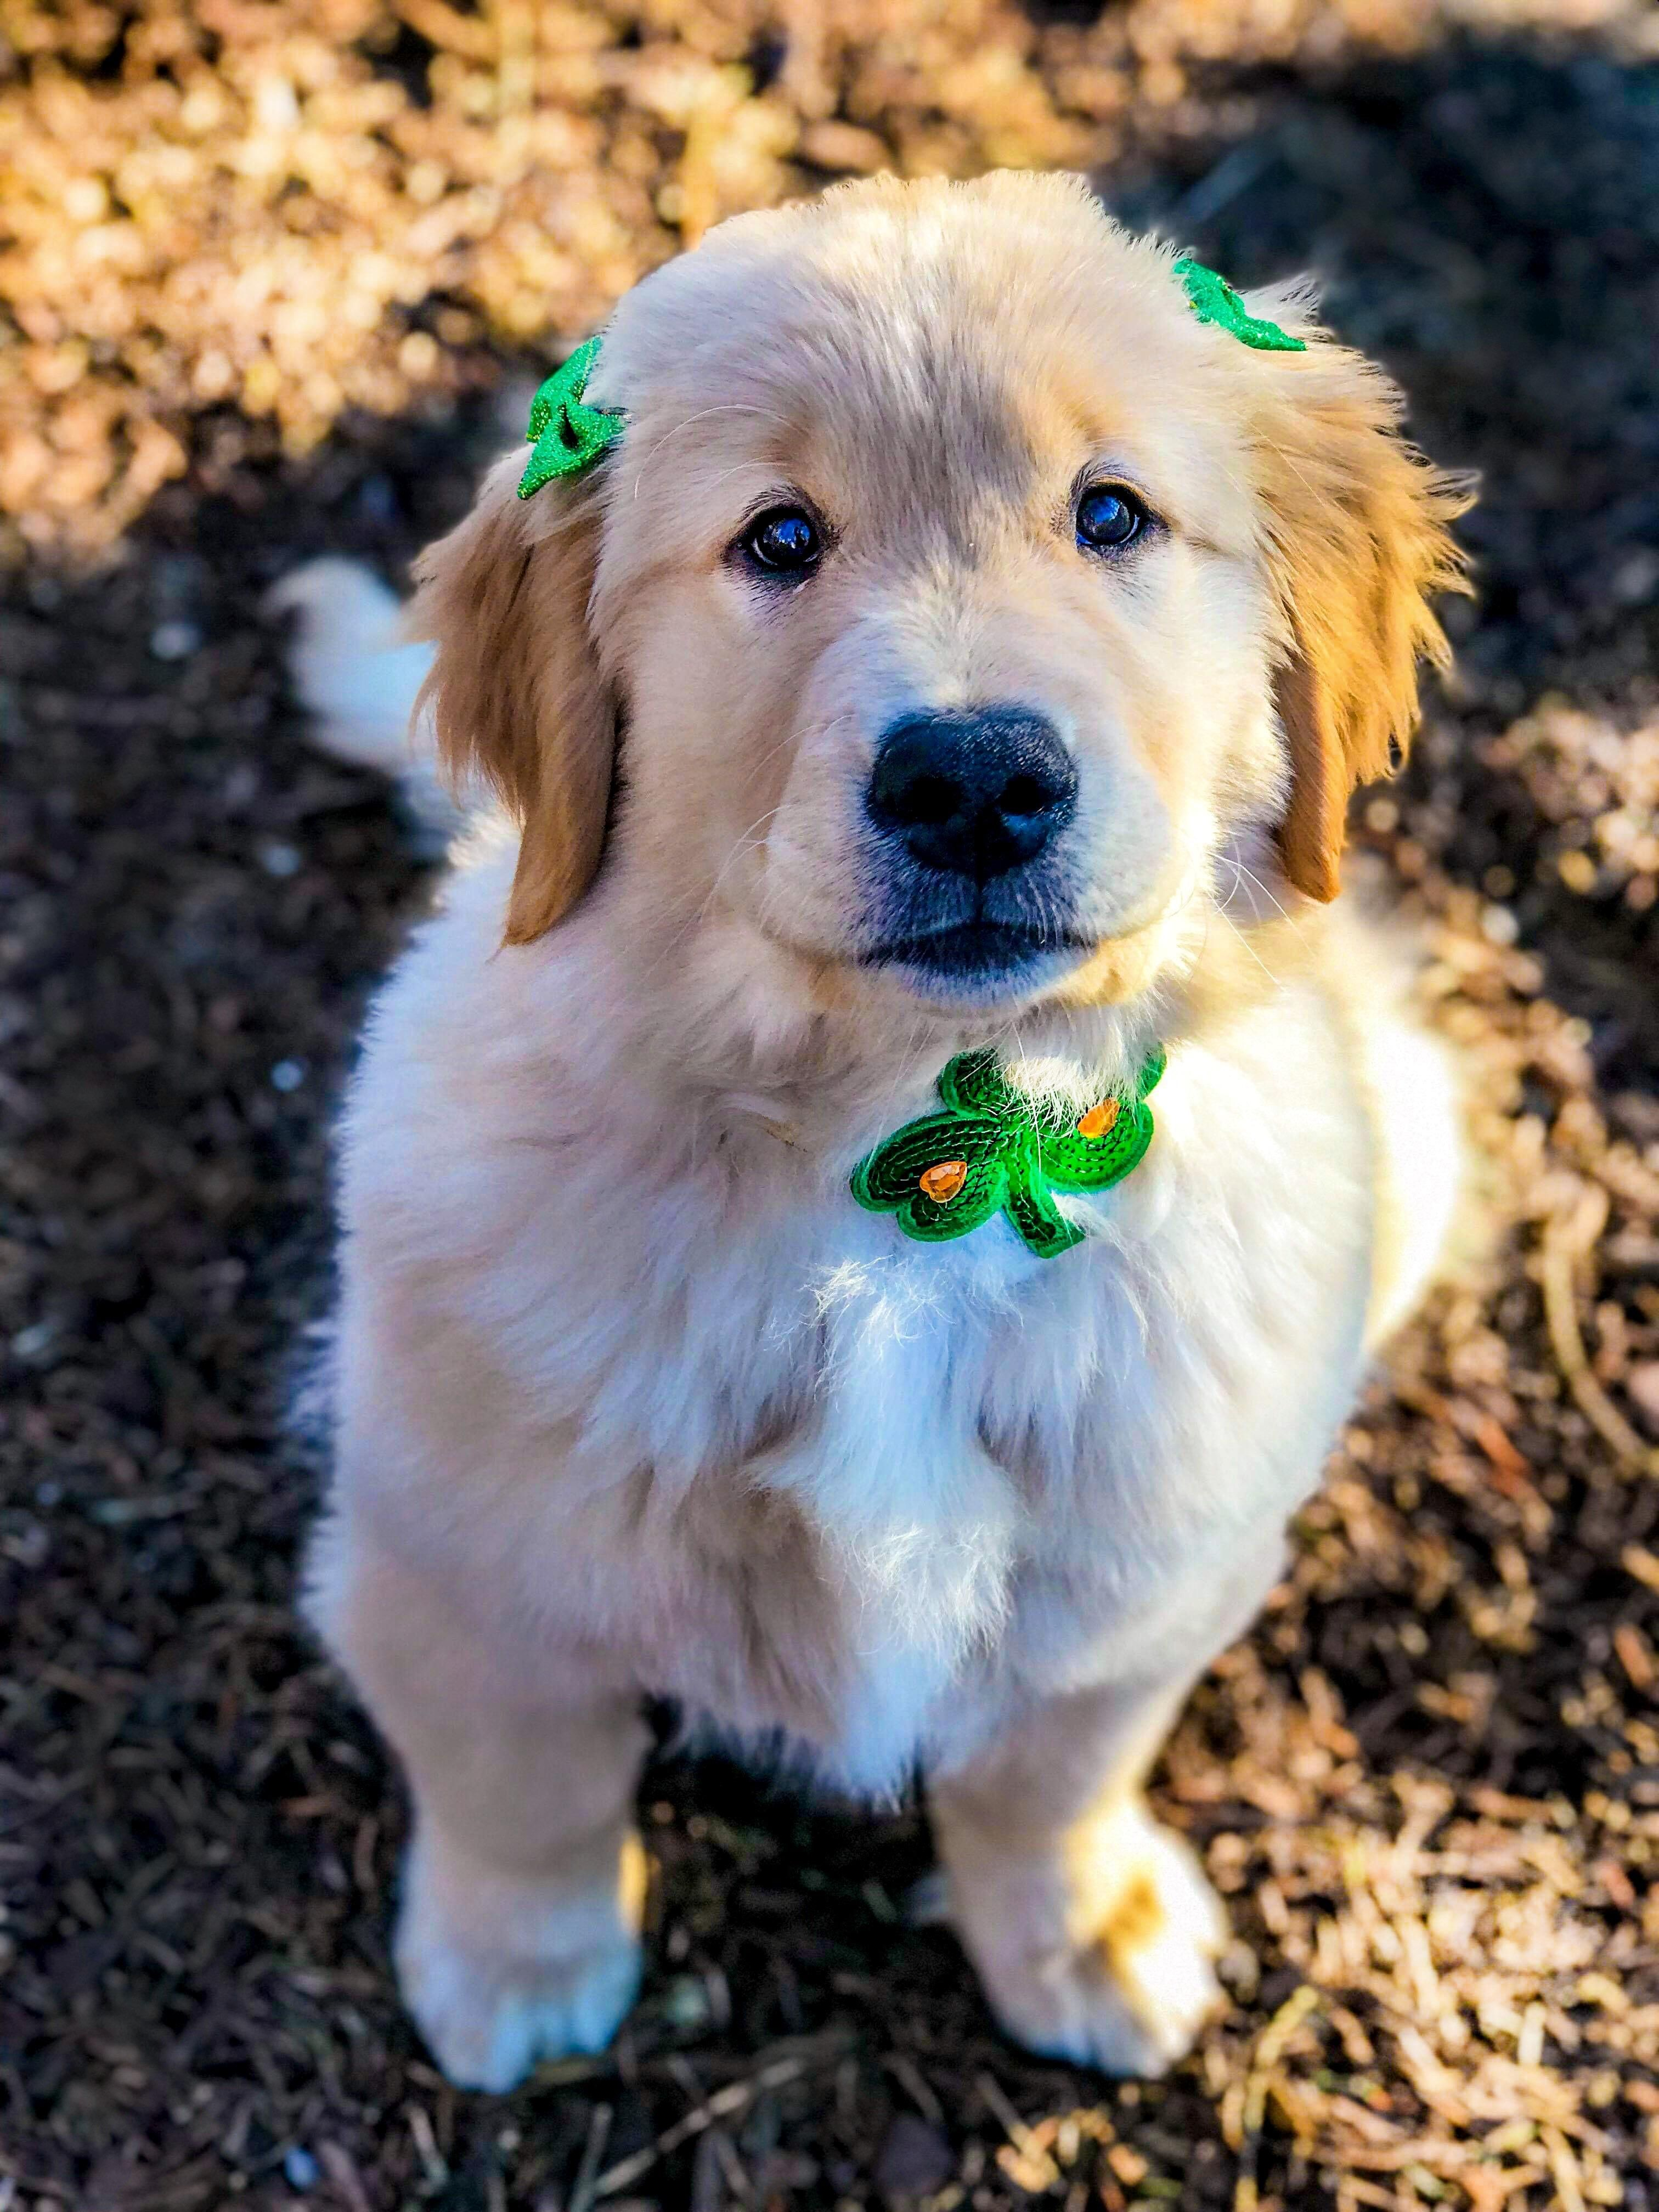 Happy St Pattys Day Everypawdy Puppies Golden Retriever